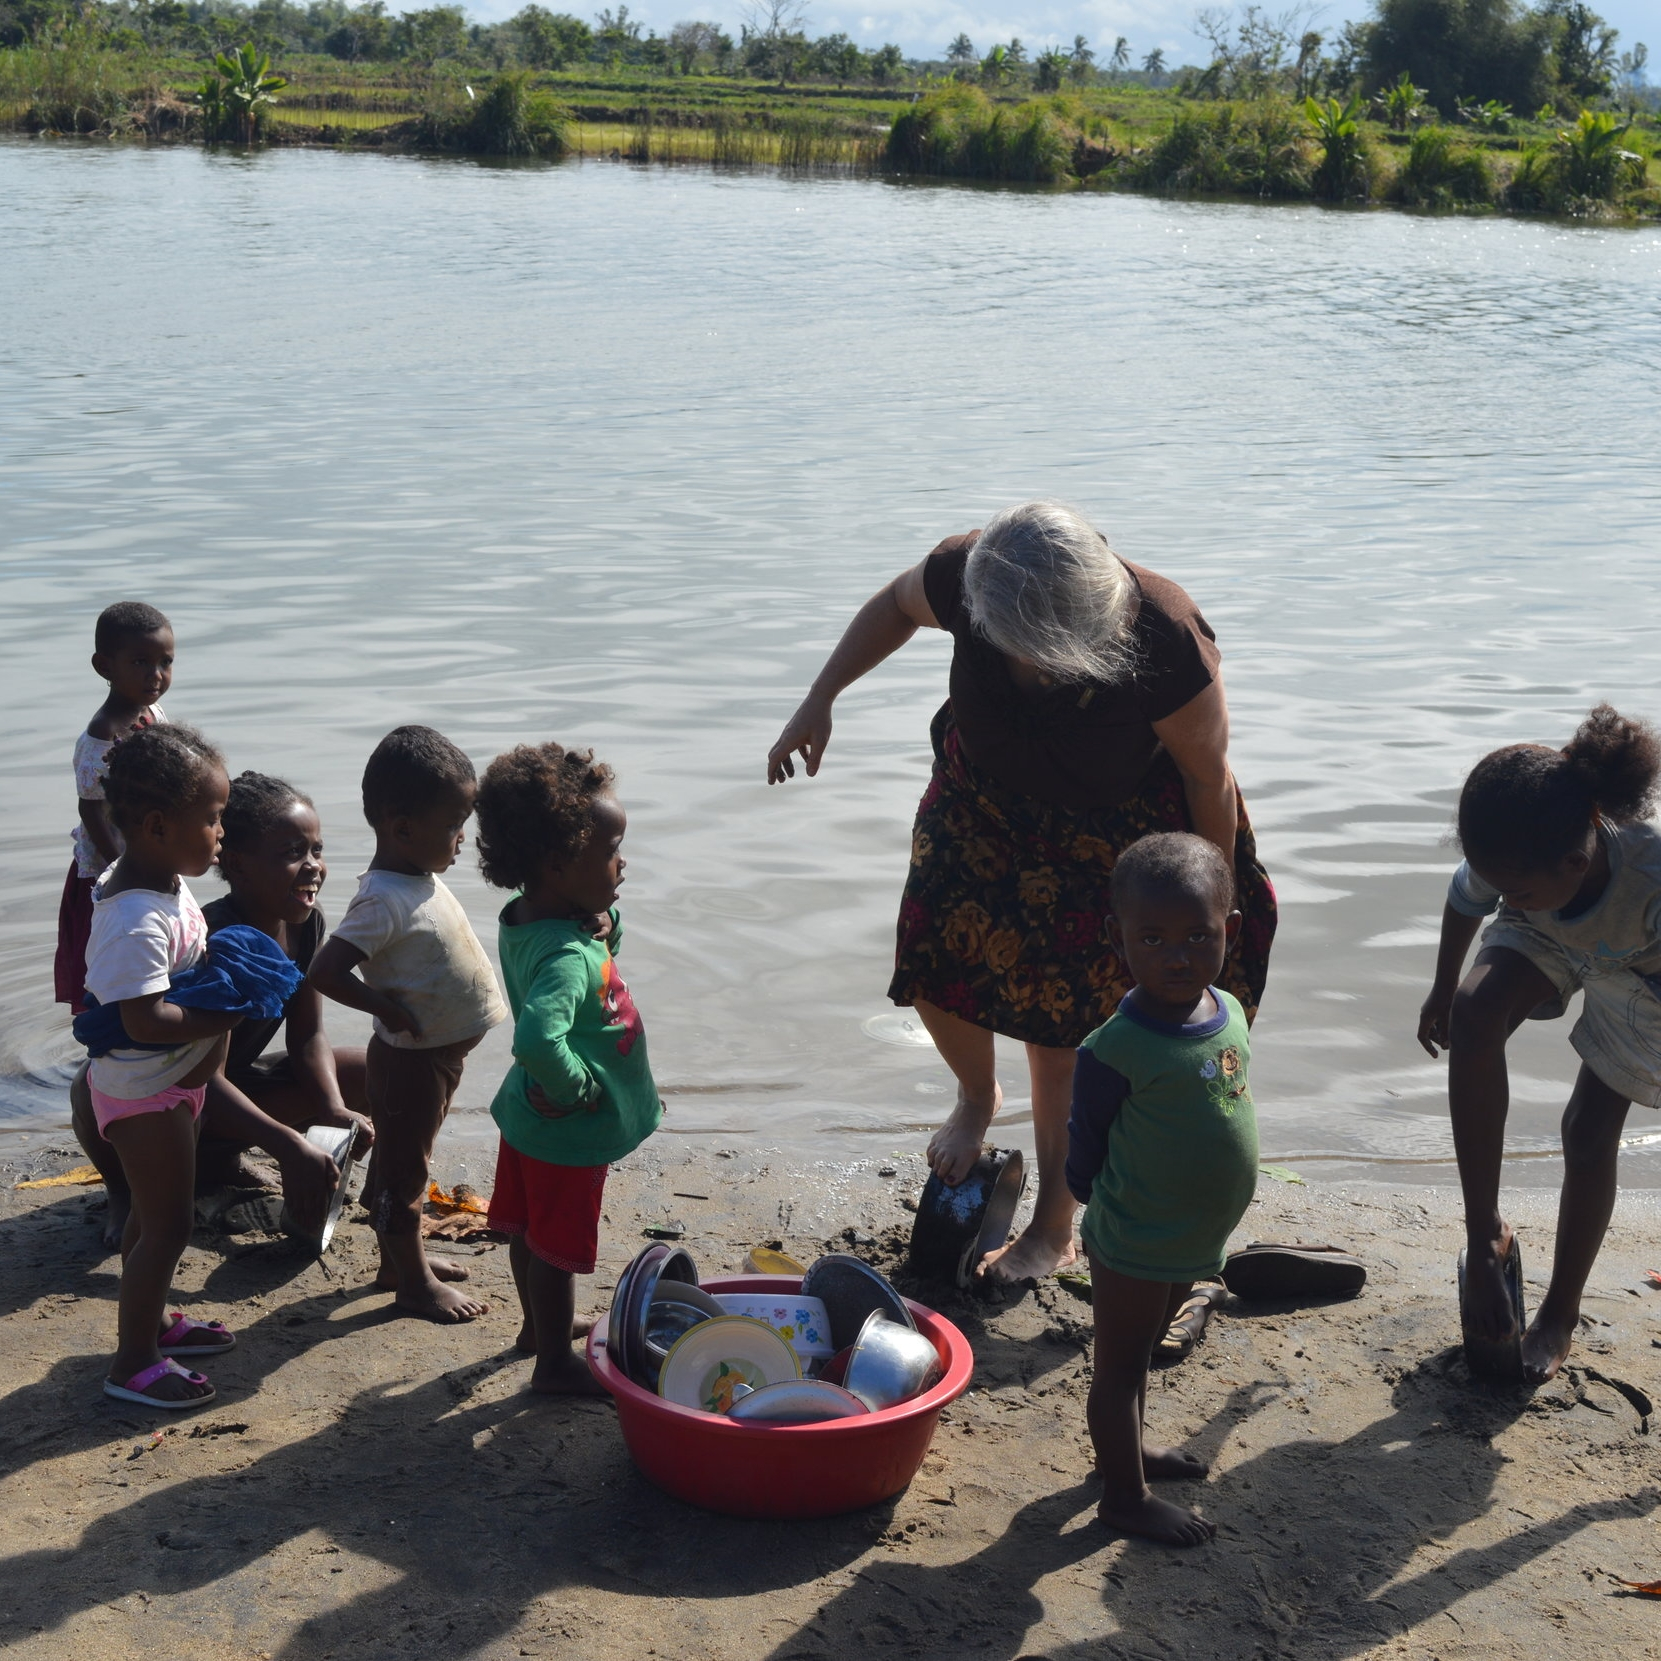 Elizabeth learning to wash cooking pots at Antetezampasika, where the first missionaries arrived 200 years ago.